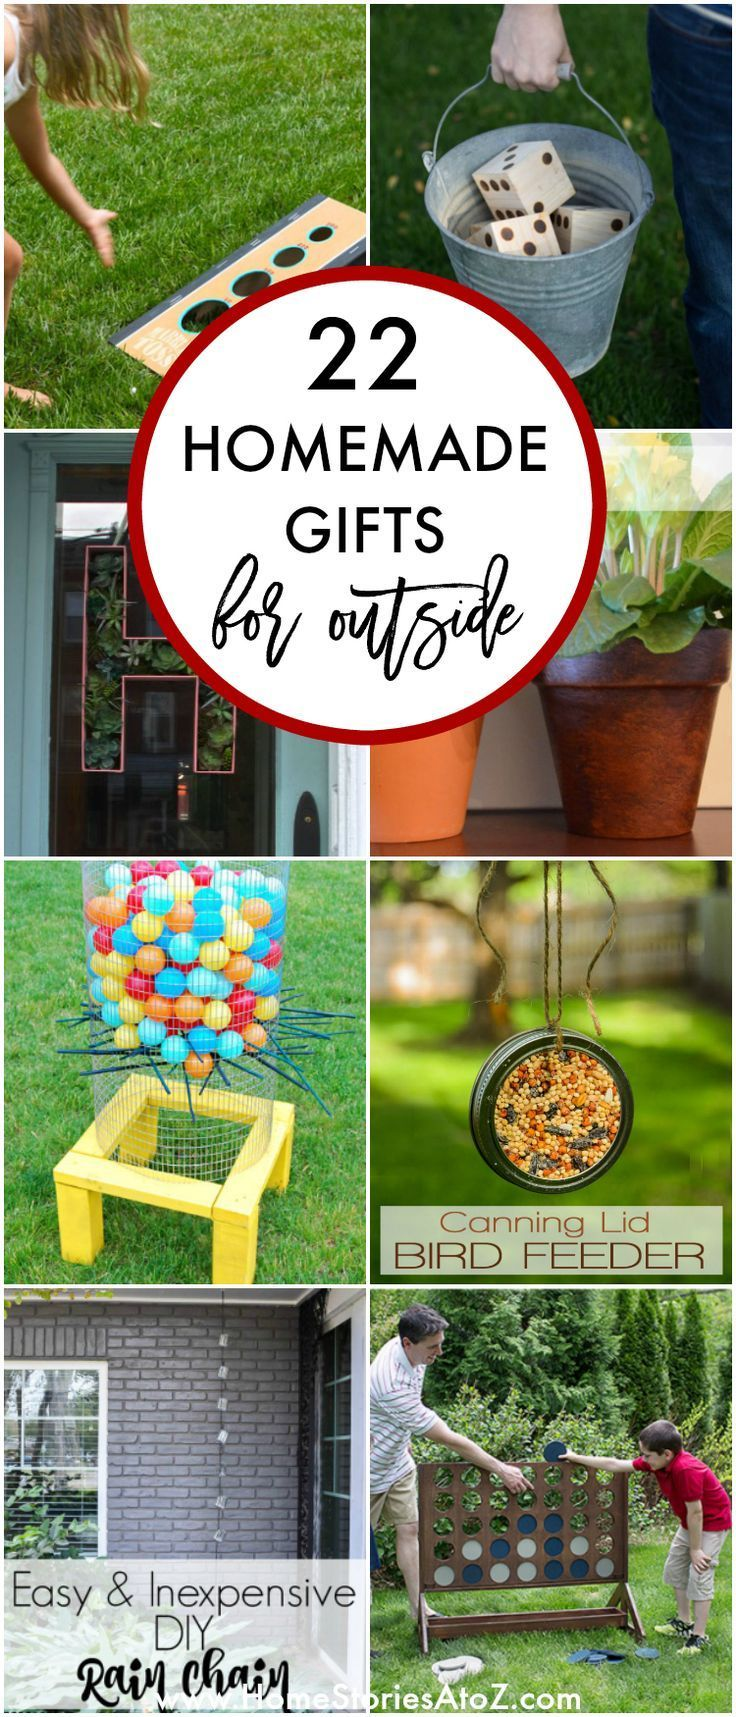 22+ Homemade Gift Ideas - Including Gifts for Outside  Homemade